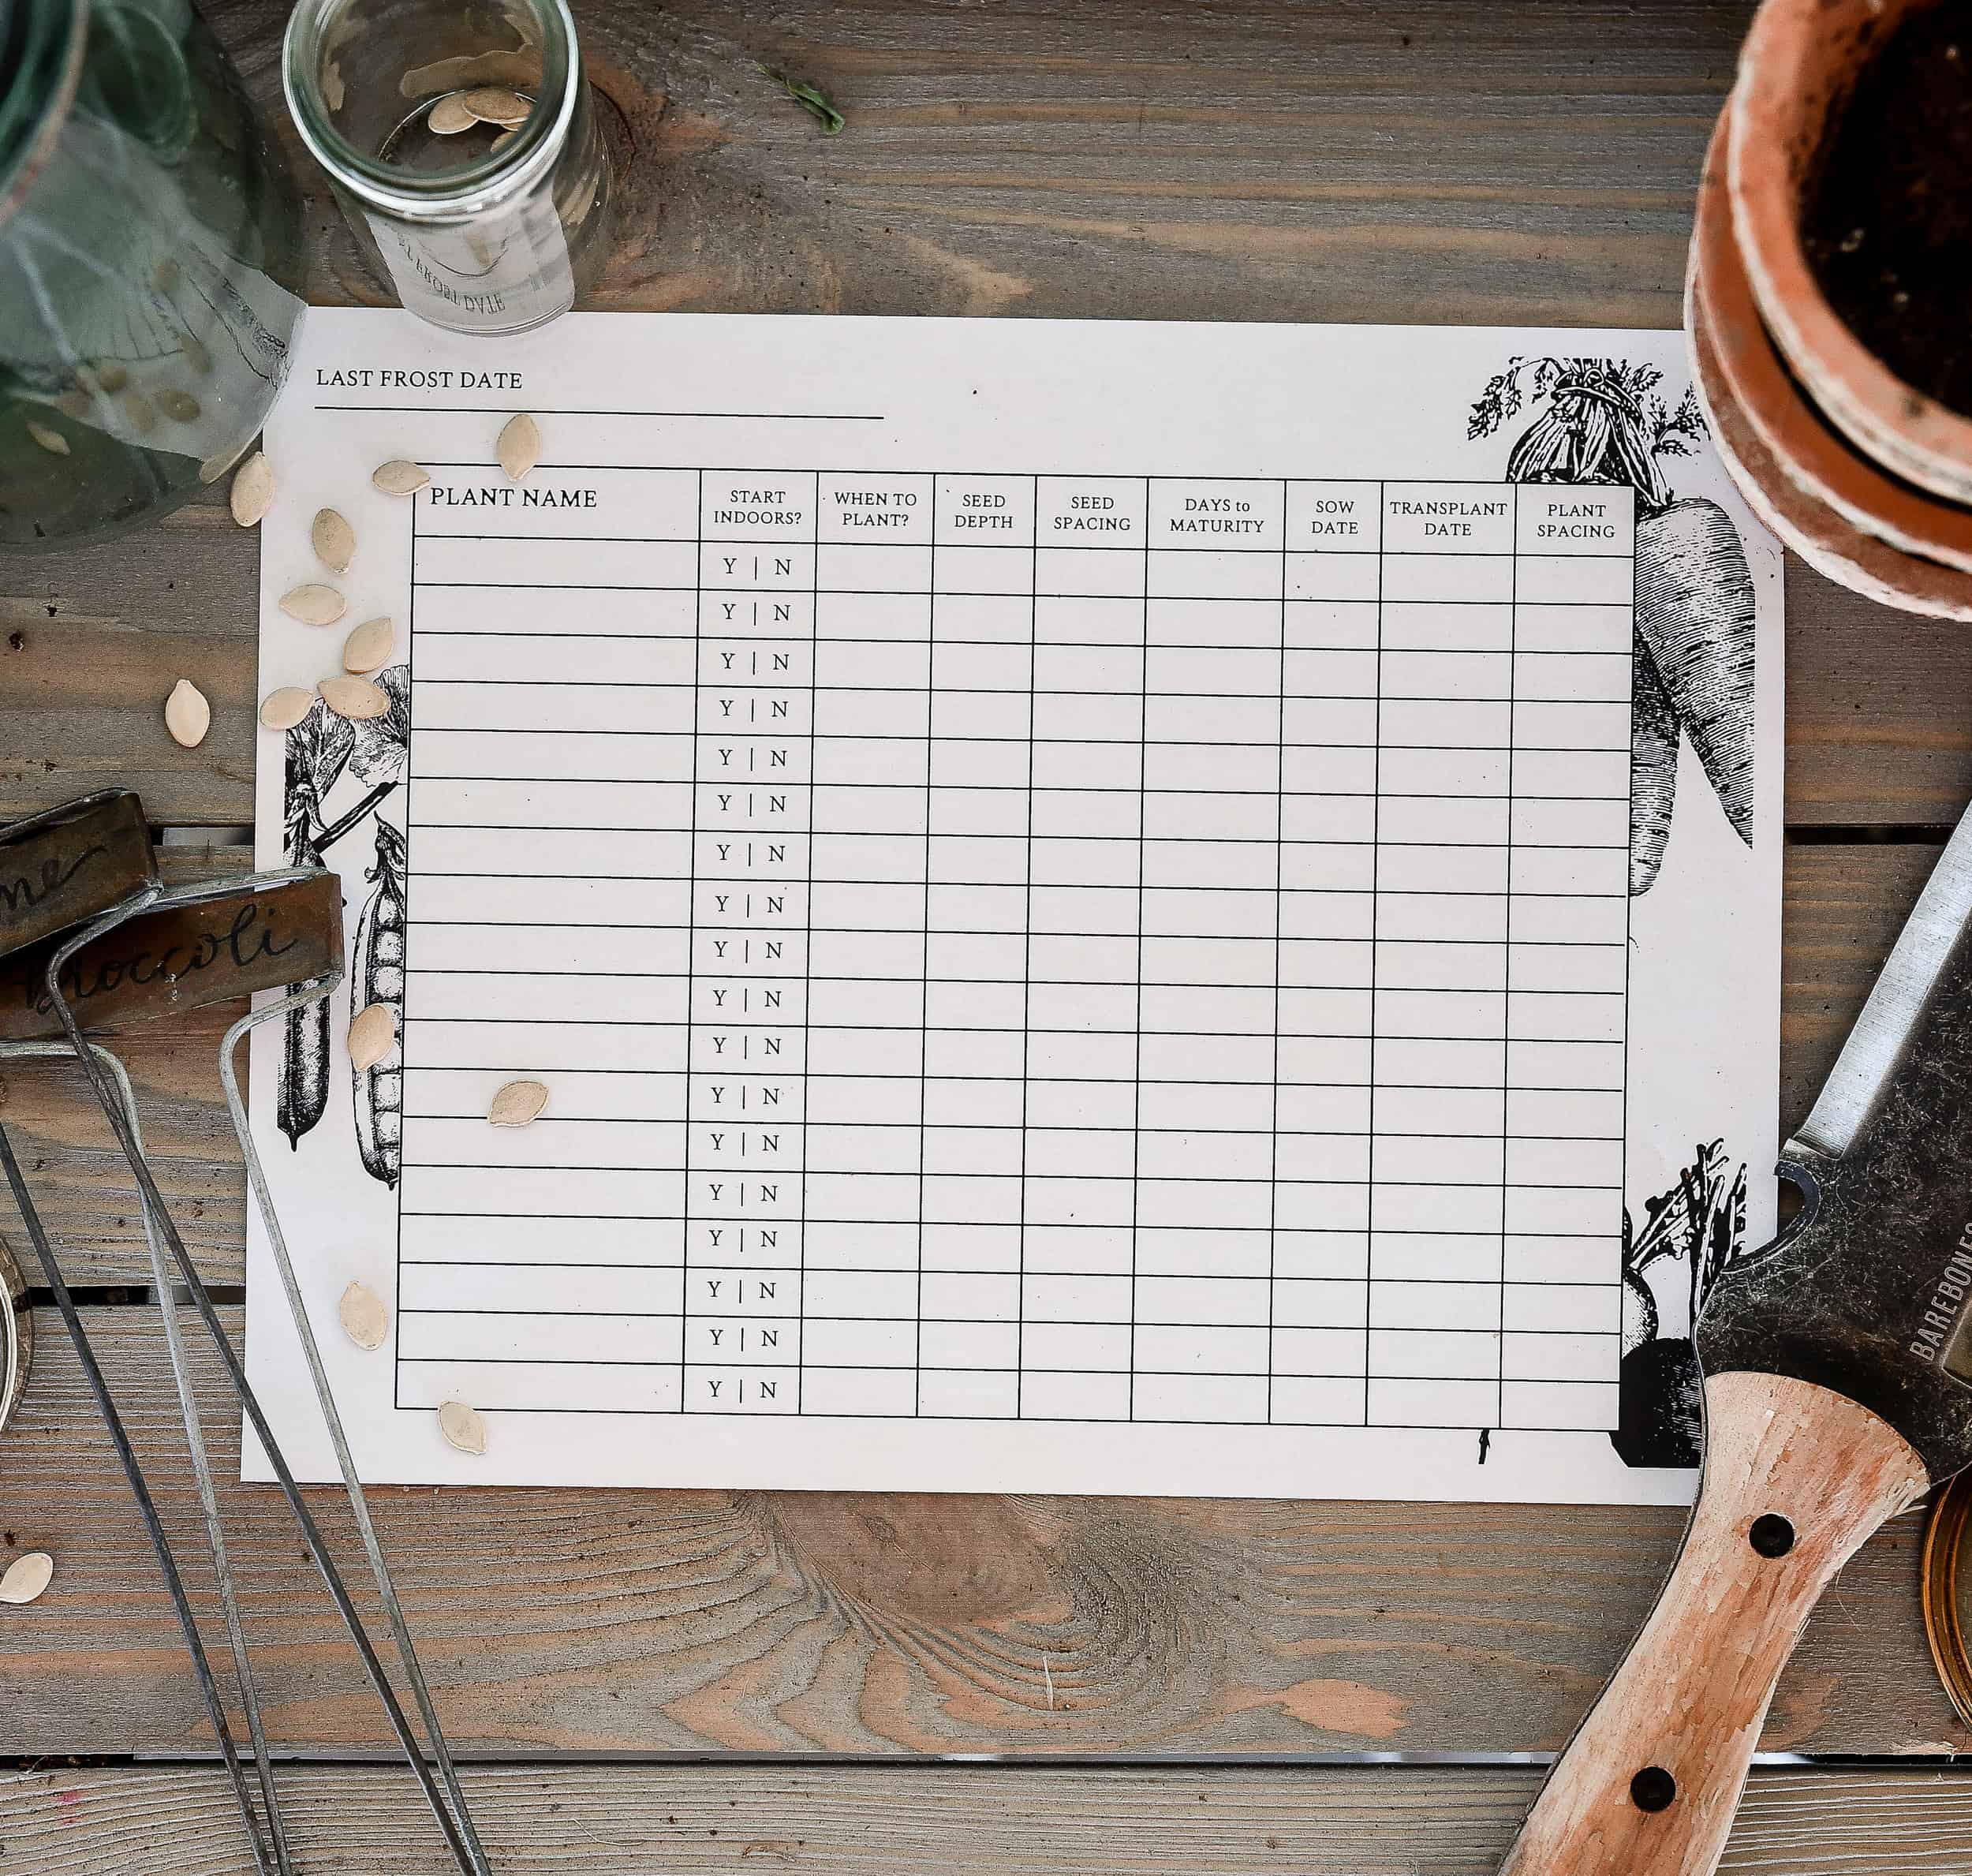 Live in a cooler climate with a limited growing season? Start your seeds indoors for an a jumpstart on your vegetable garden! Learn how to start seeds indoors in this easy to follow post, plus download my free printable seed starting log book!